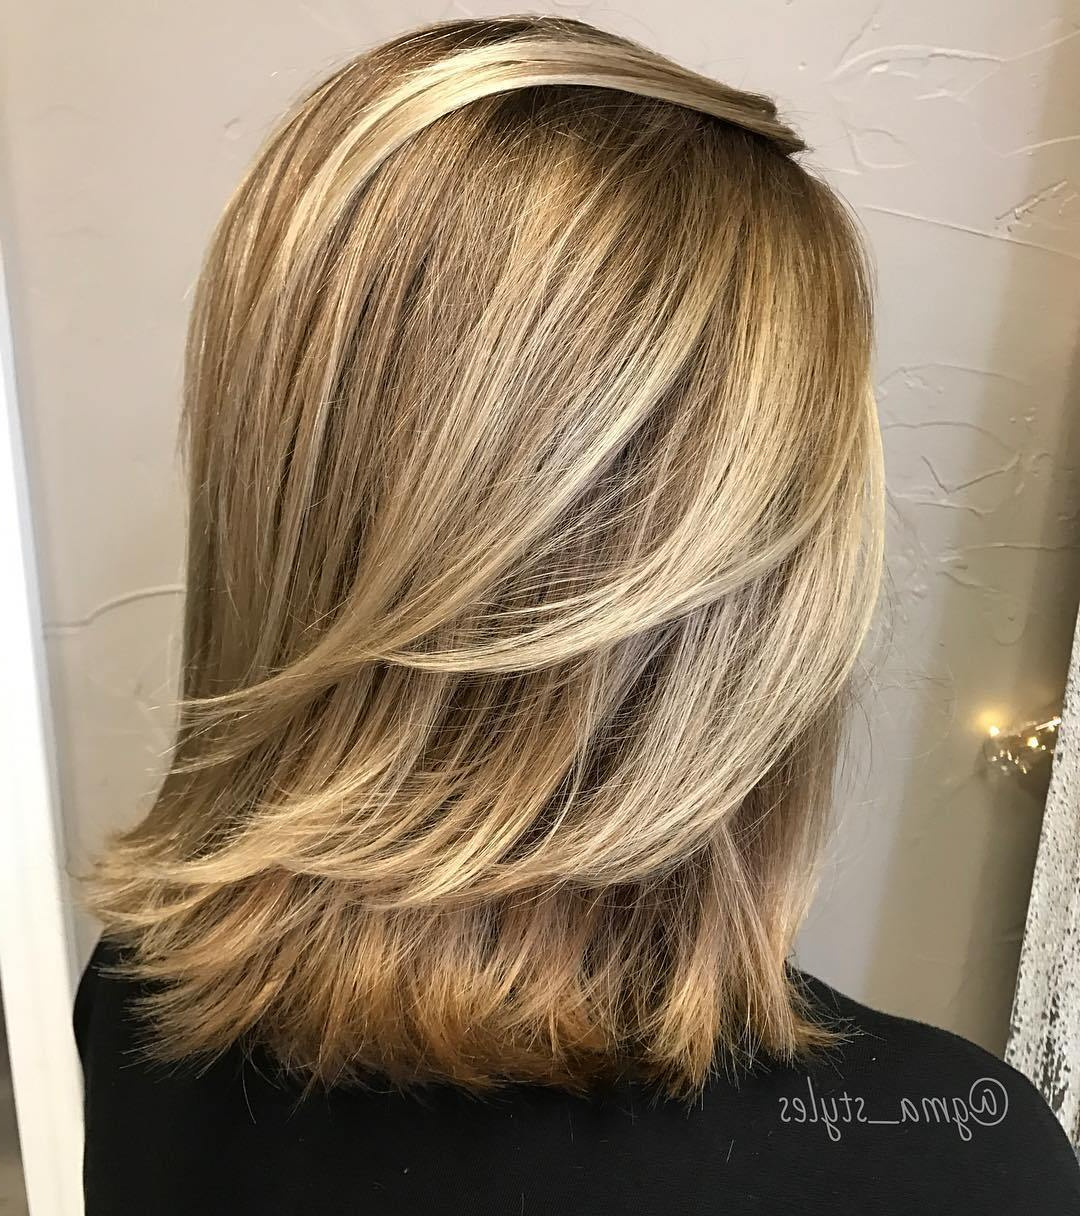 50 Fabulous Medium Length Layered Hairstyles – Hair Adviser In Golden Bronde Bob Hairstyles With Piecey Layers (View 4 of 20)